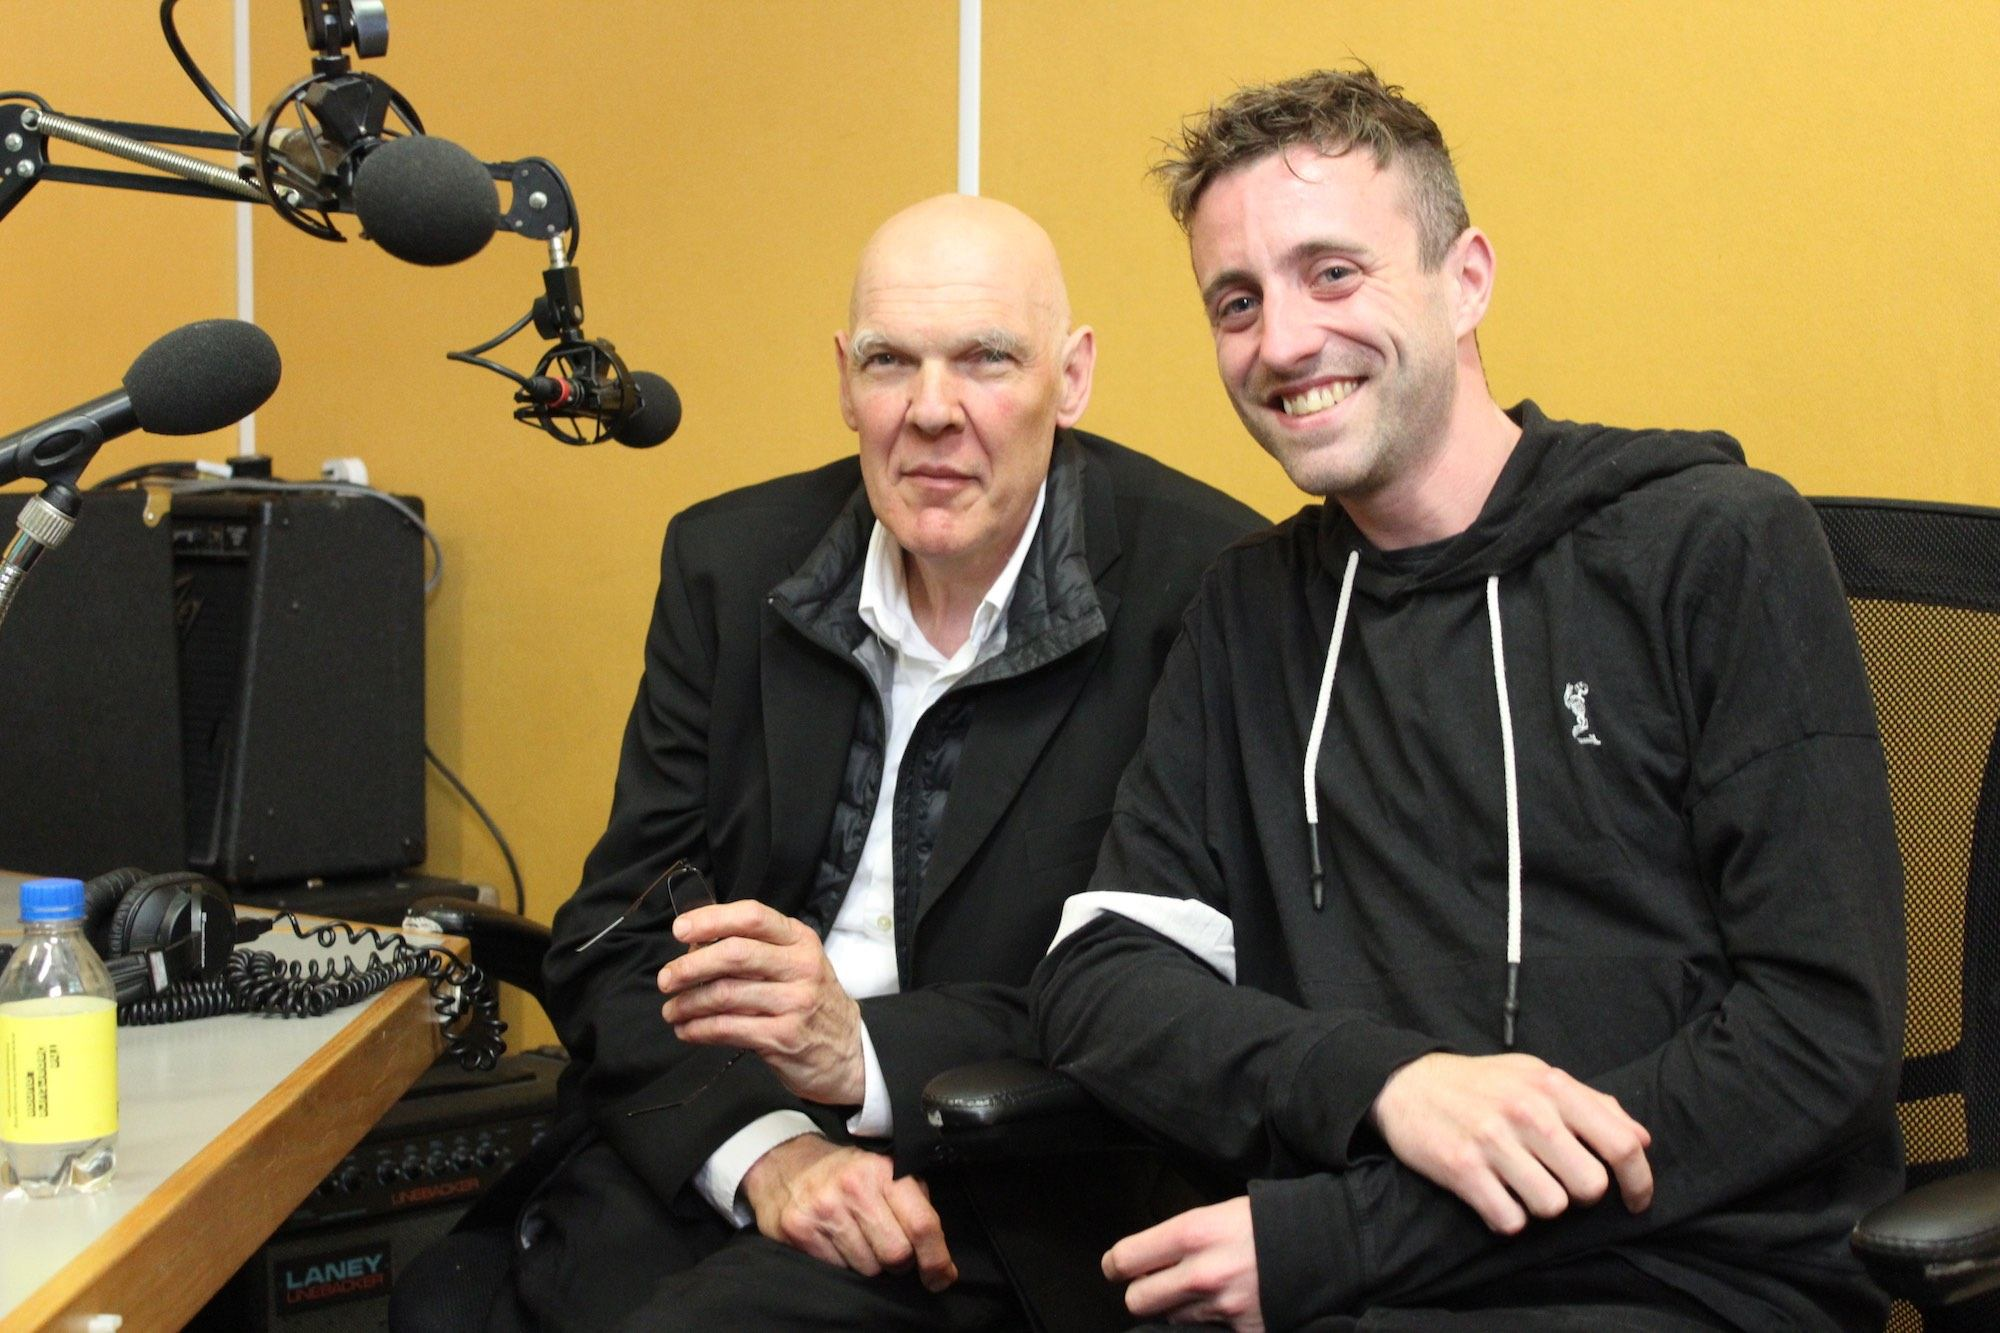 Nigel Rolfe and Martin O'Brien sit side by side in a radio recording studio